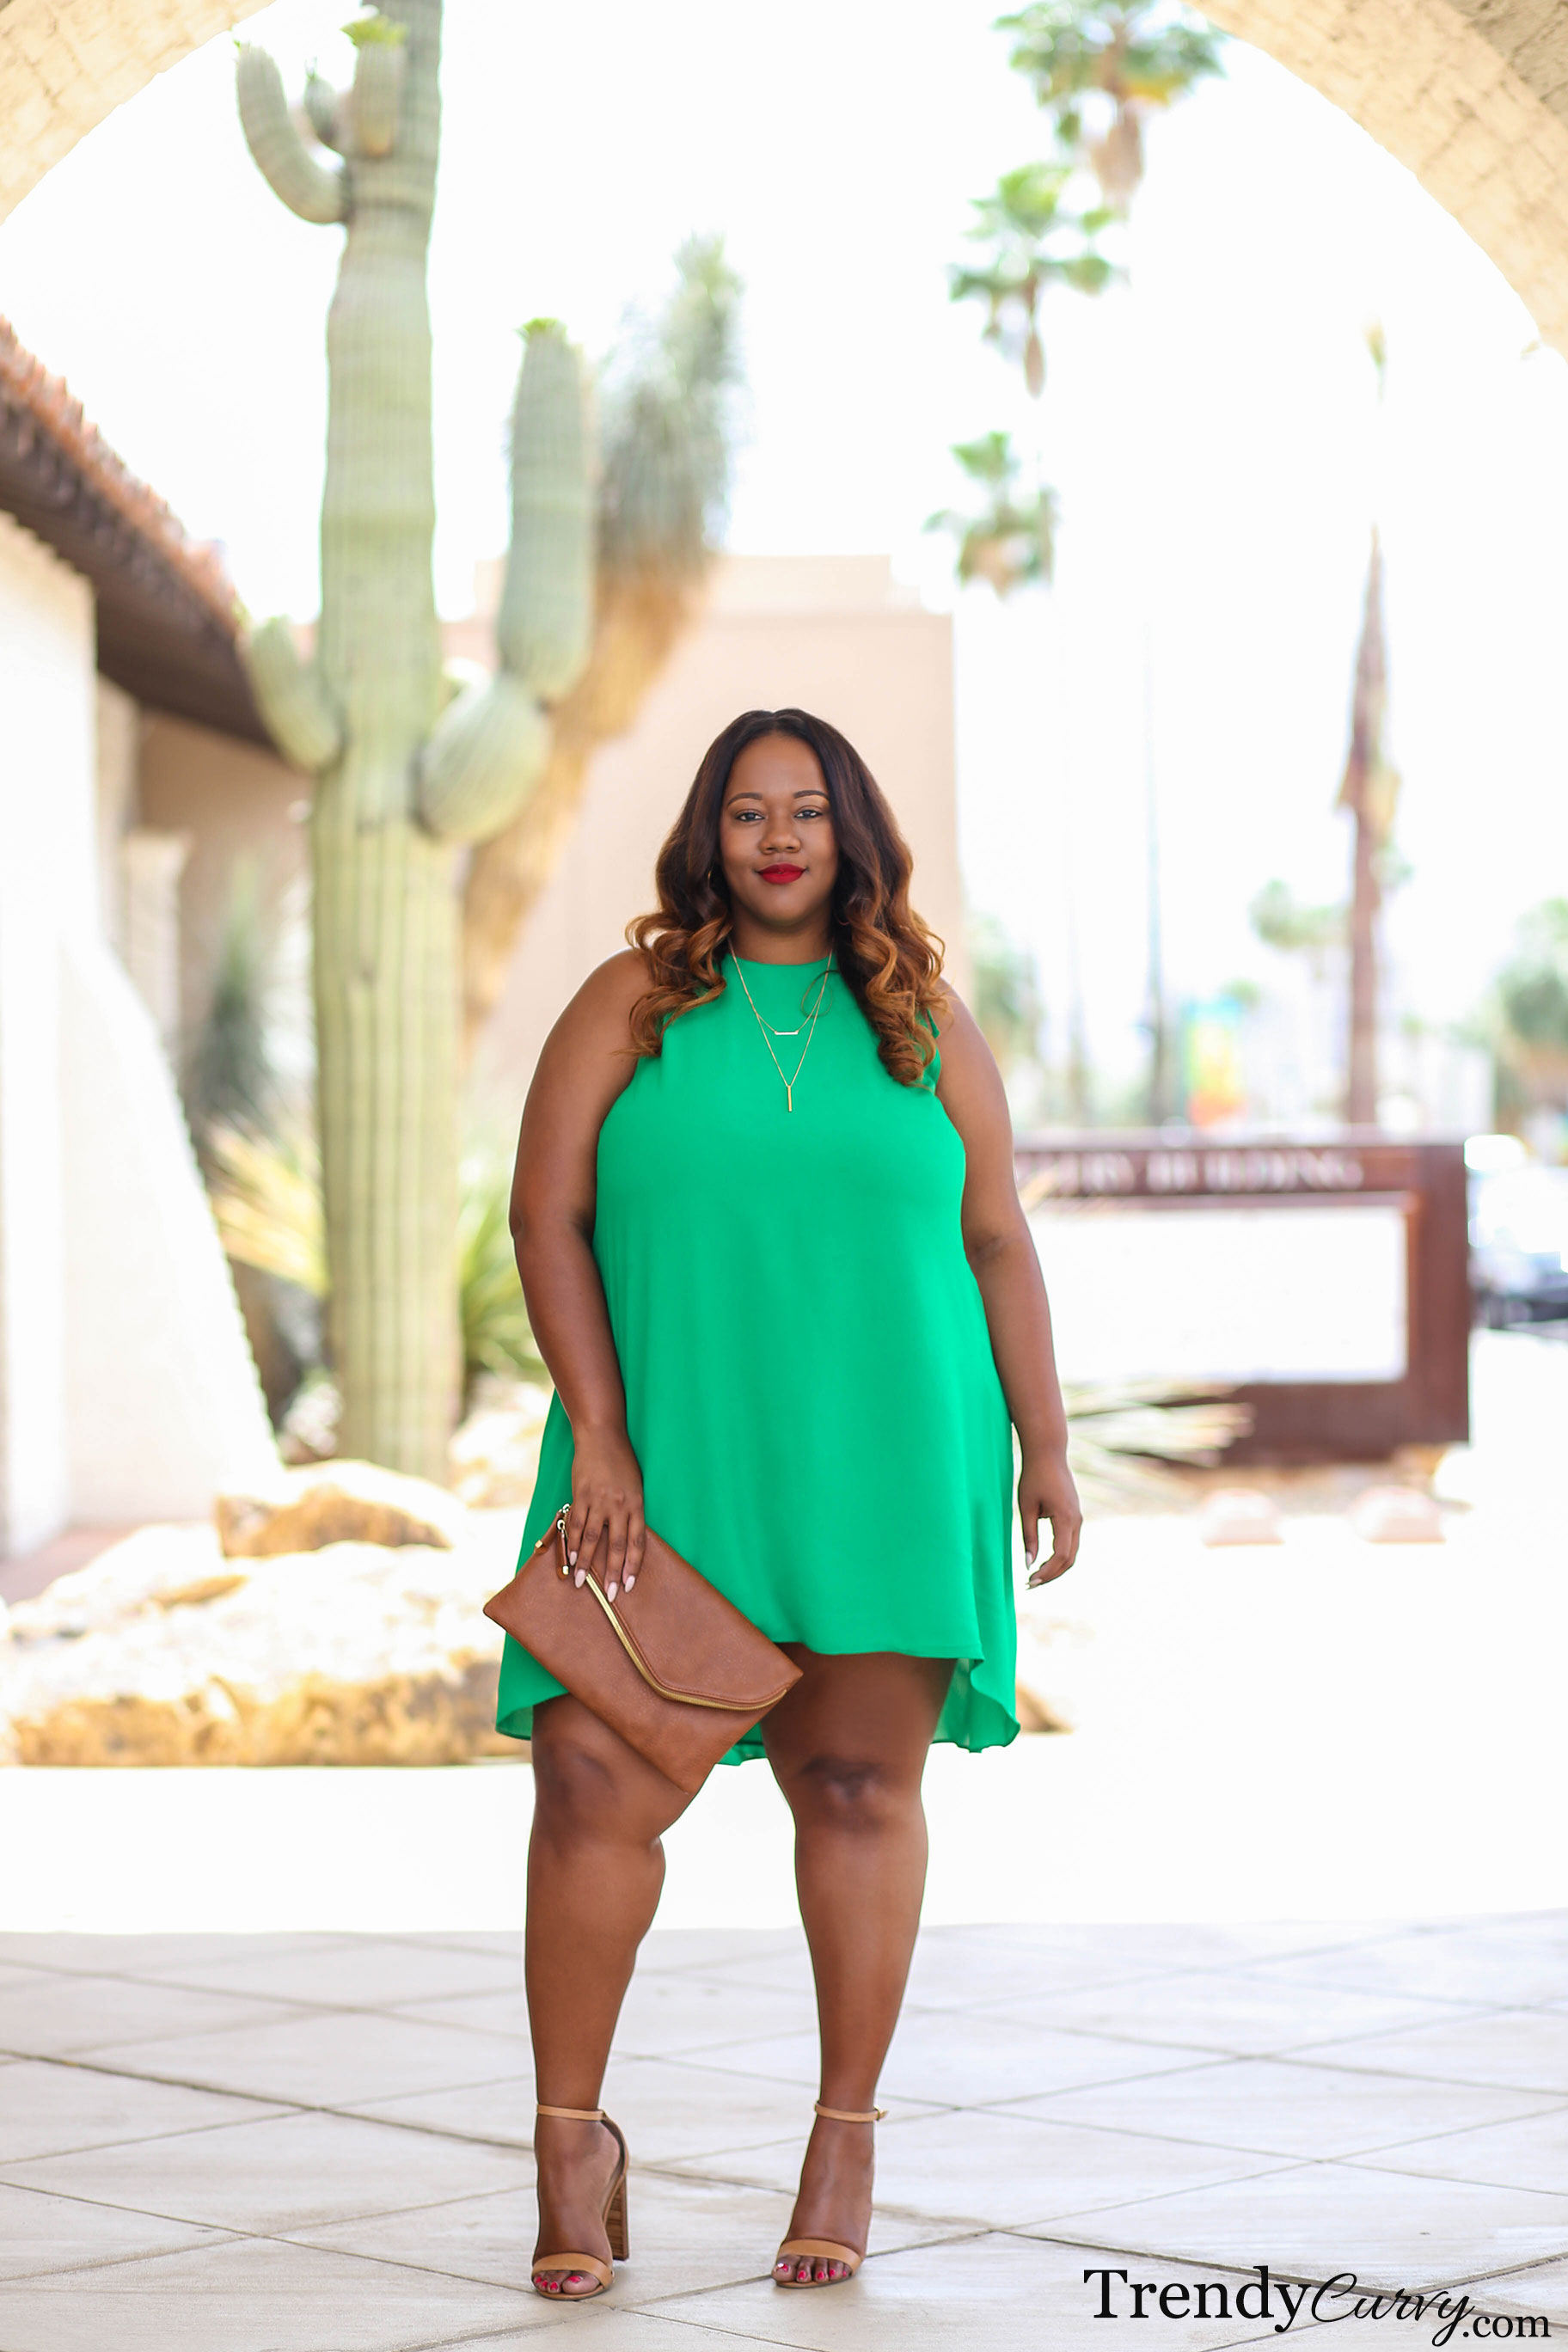 Plus Size Fashion BlogTrendy Curvy